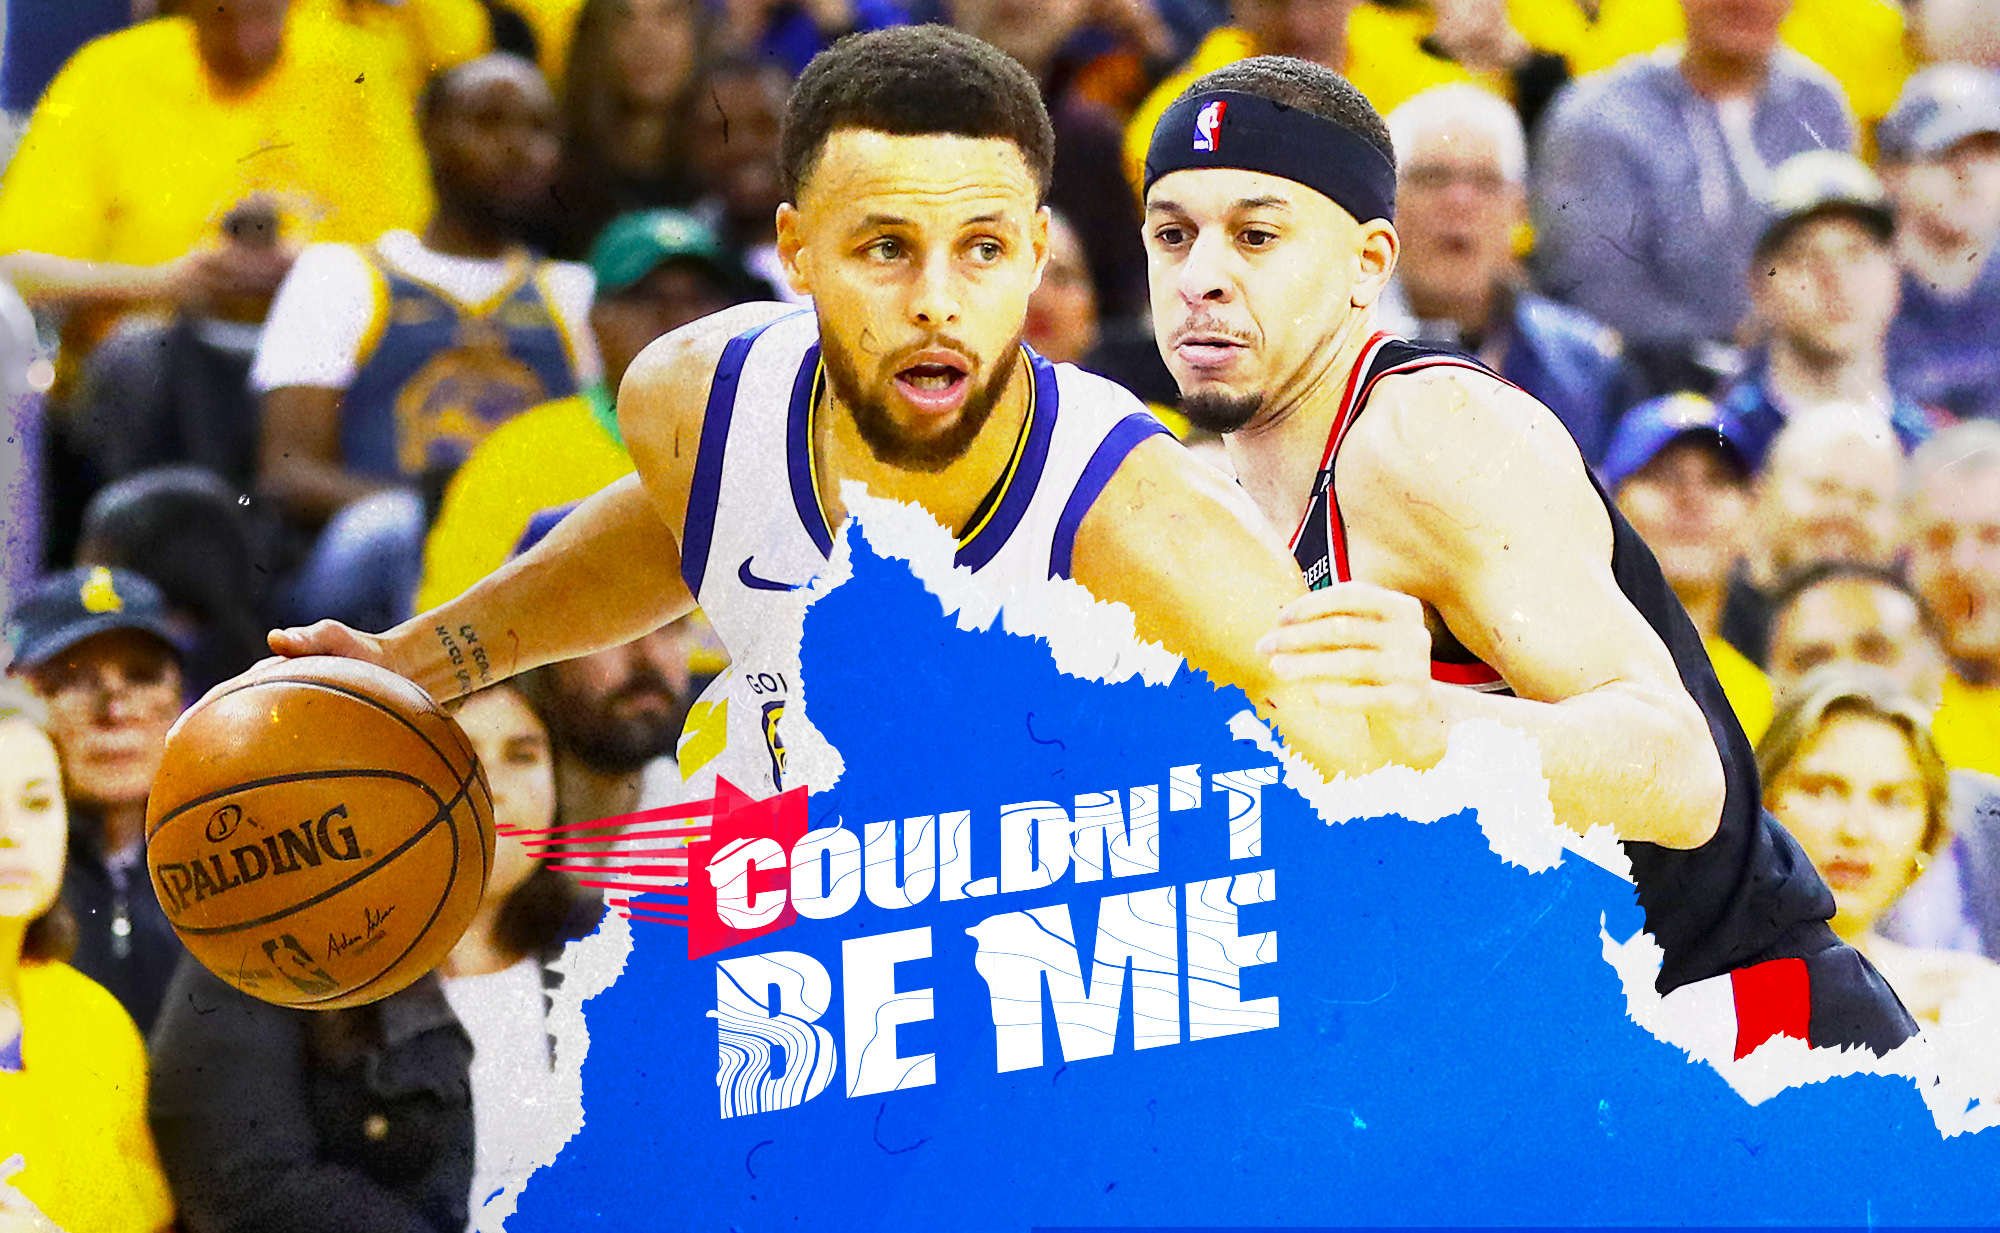 Couldn't Be Me: Help, my brother is Steph Curry